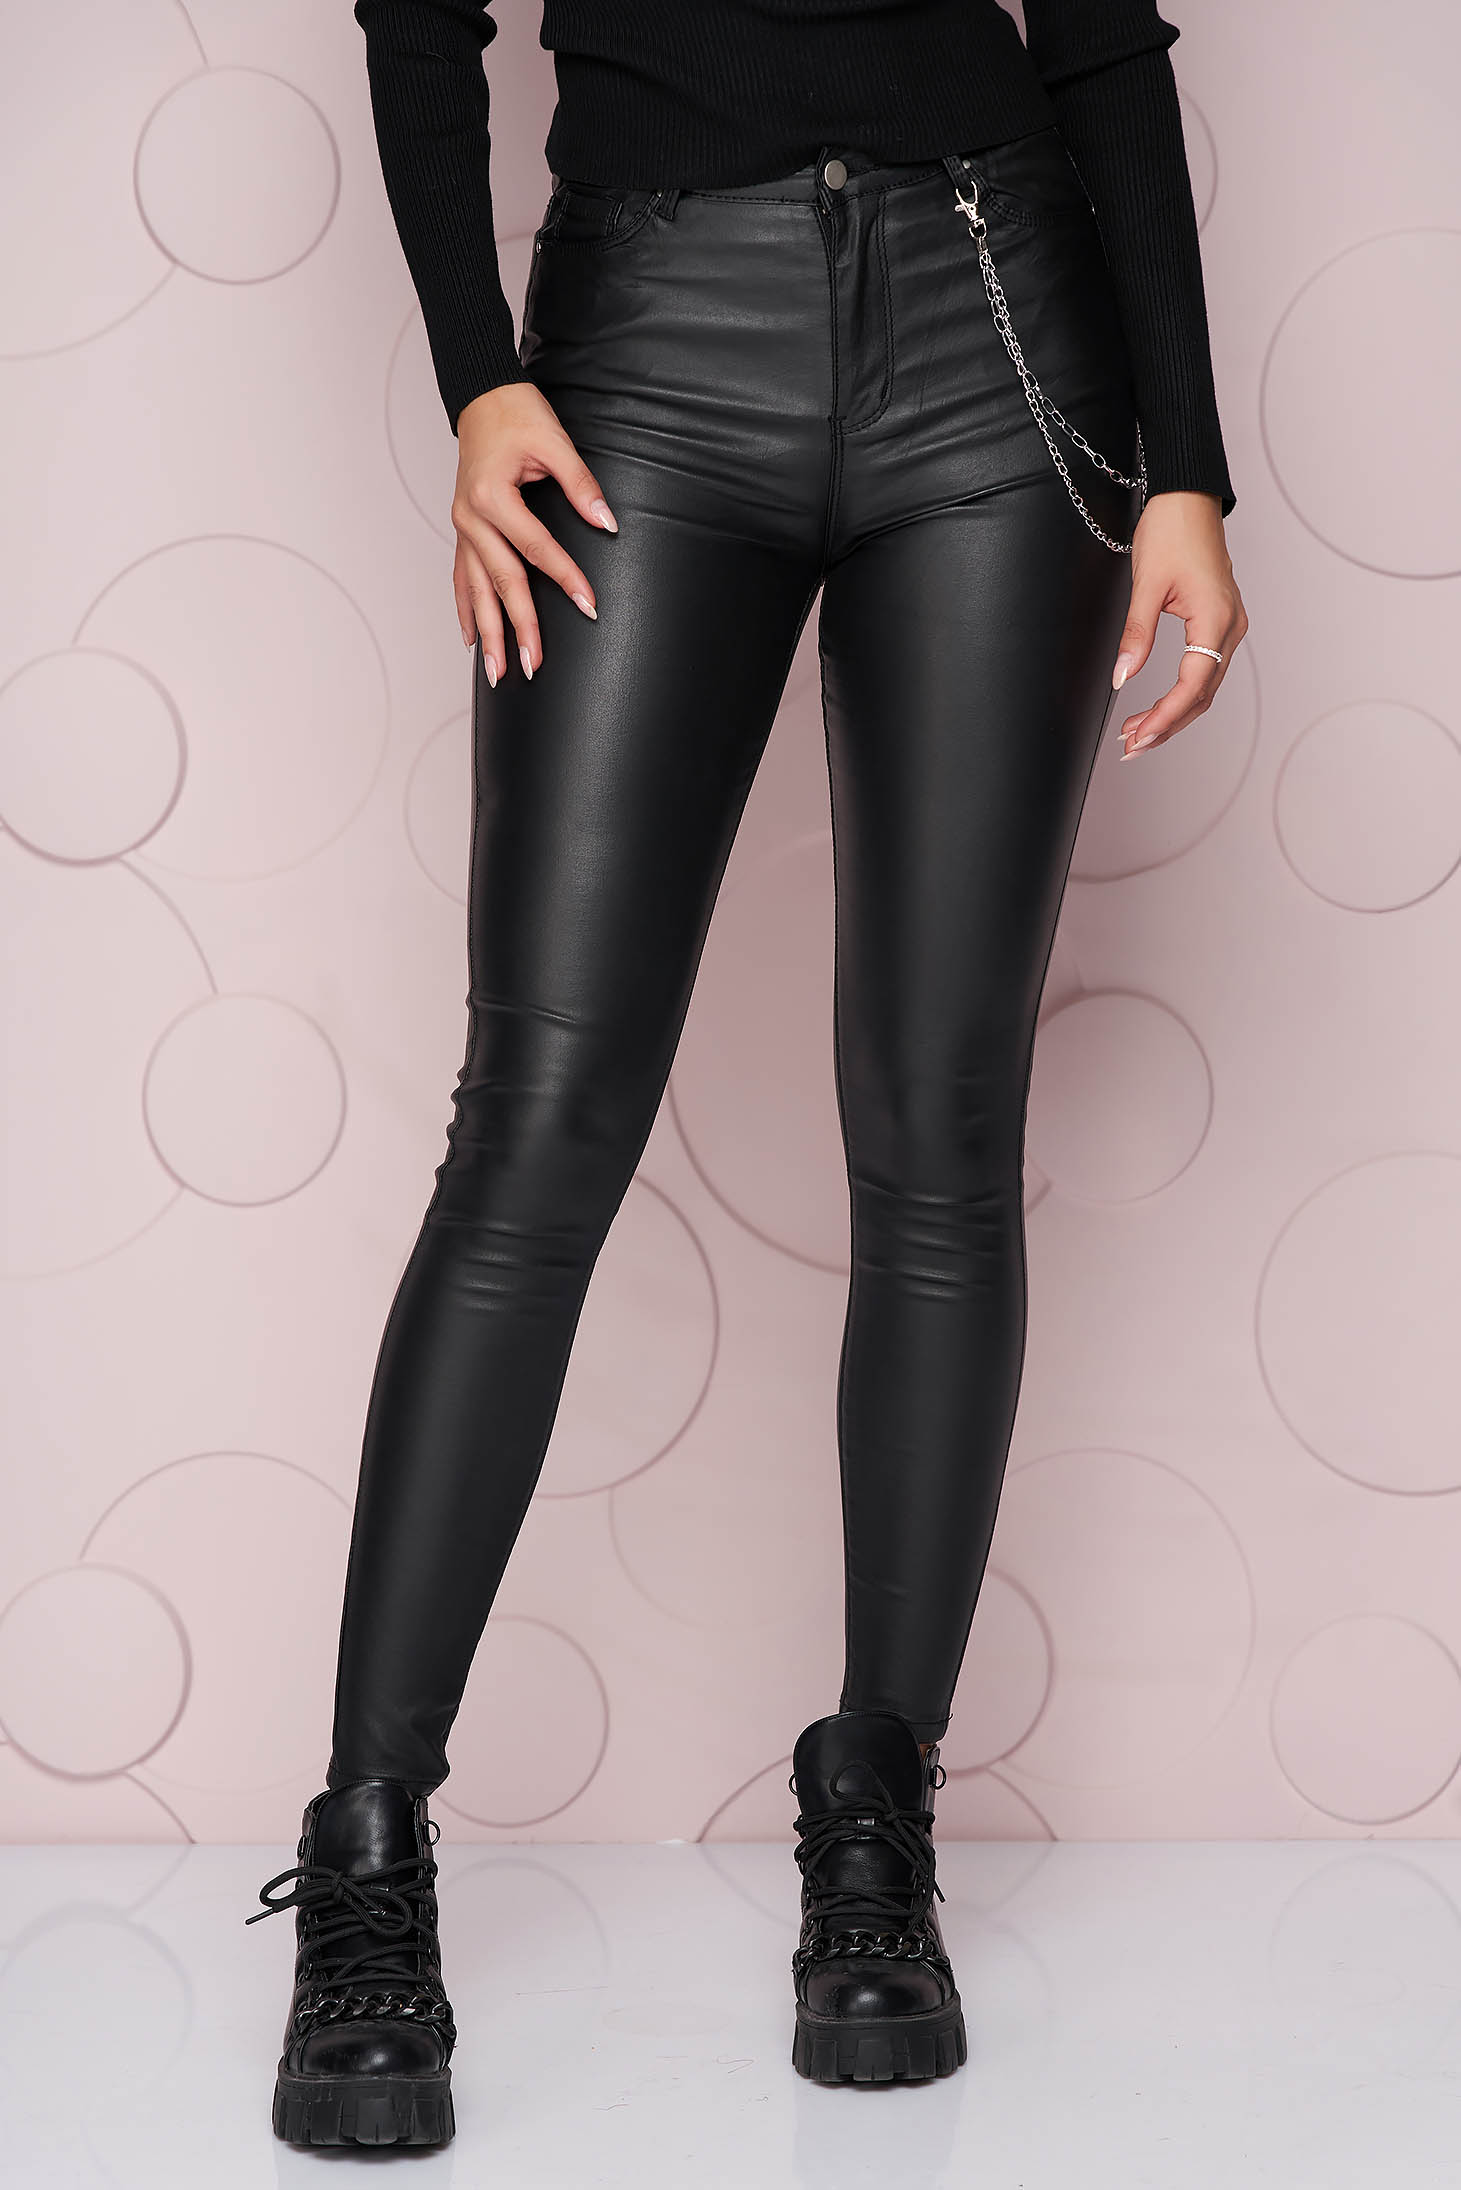 Black trousers high waisted thin fabric from elastic fabric with tented cut metallic chain accessory